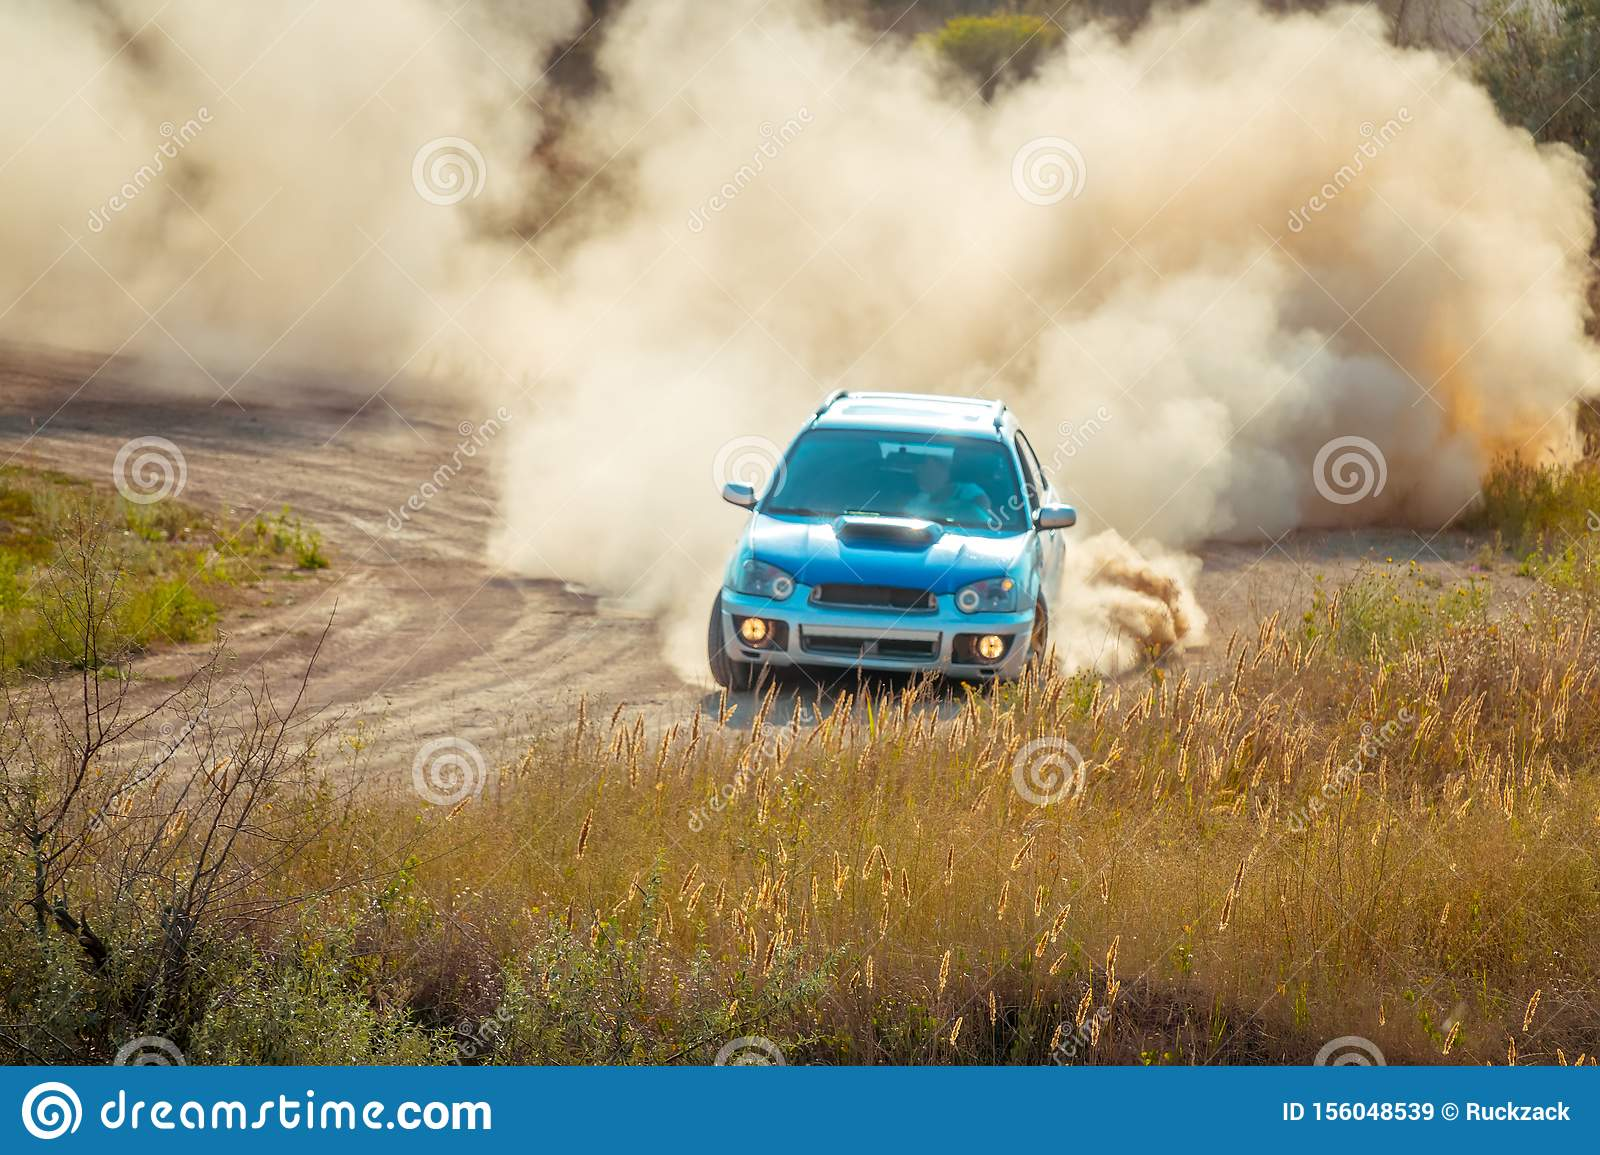 Car on the Bend of a Sunny Dusty Road